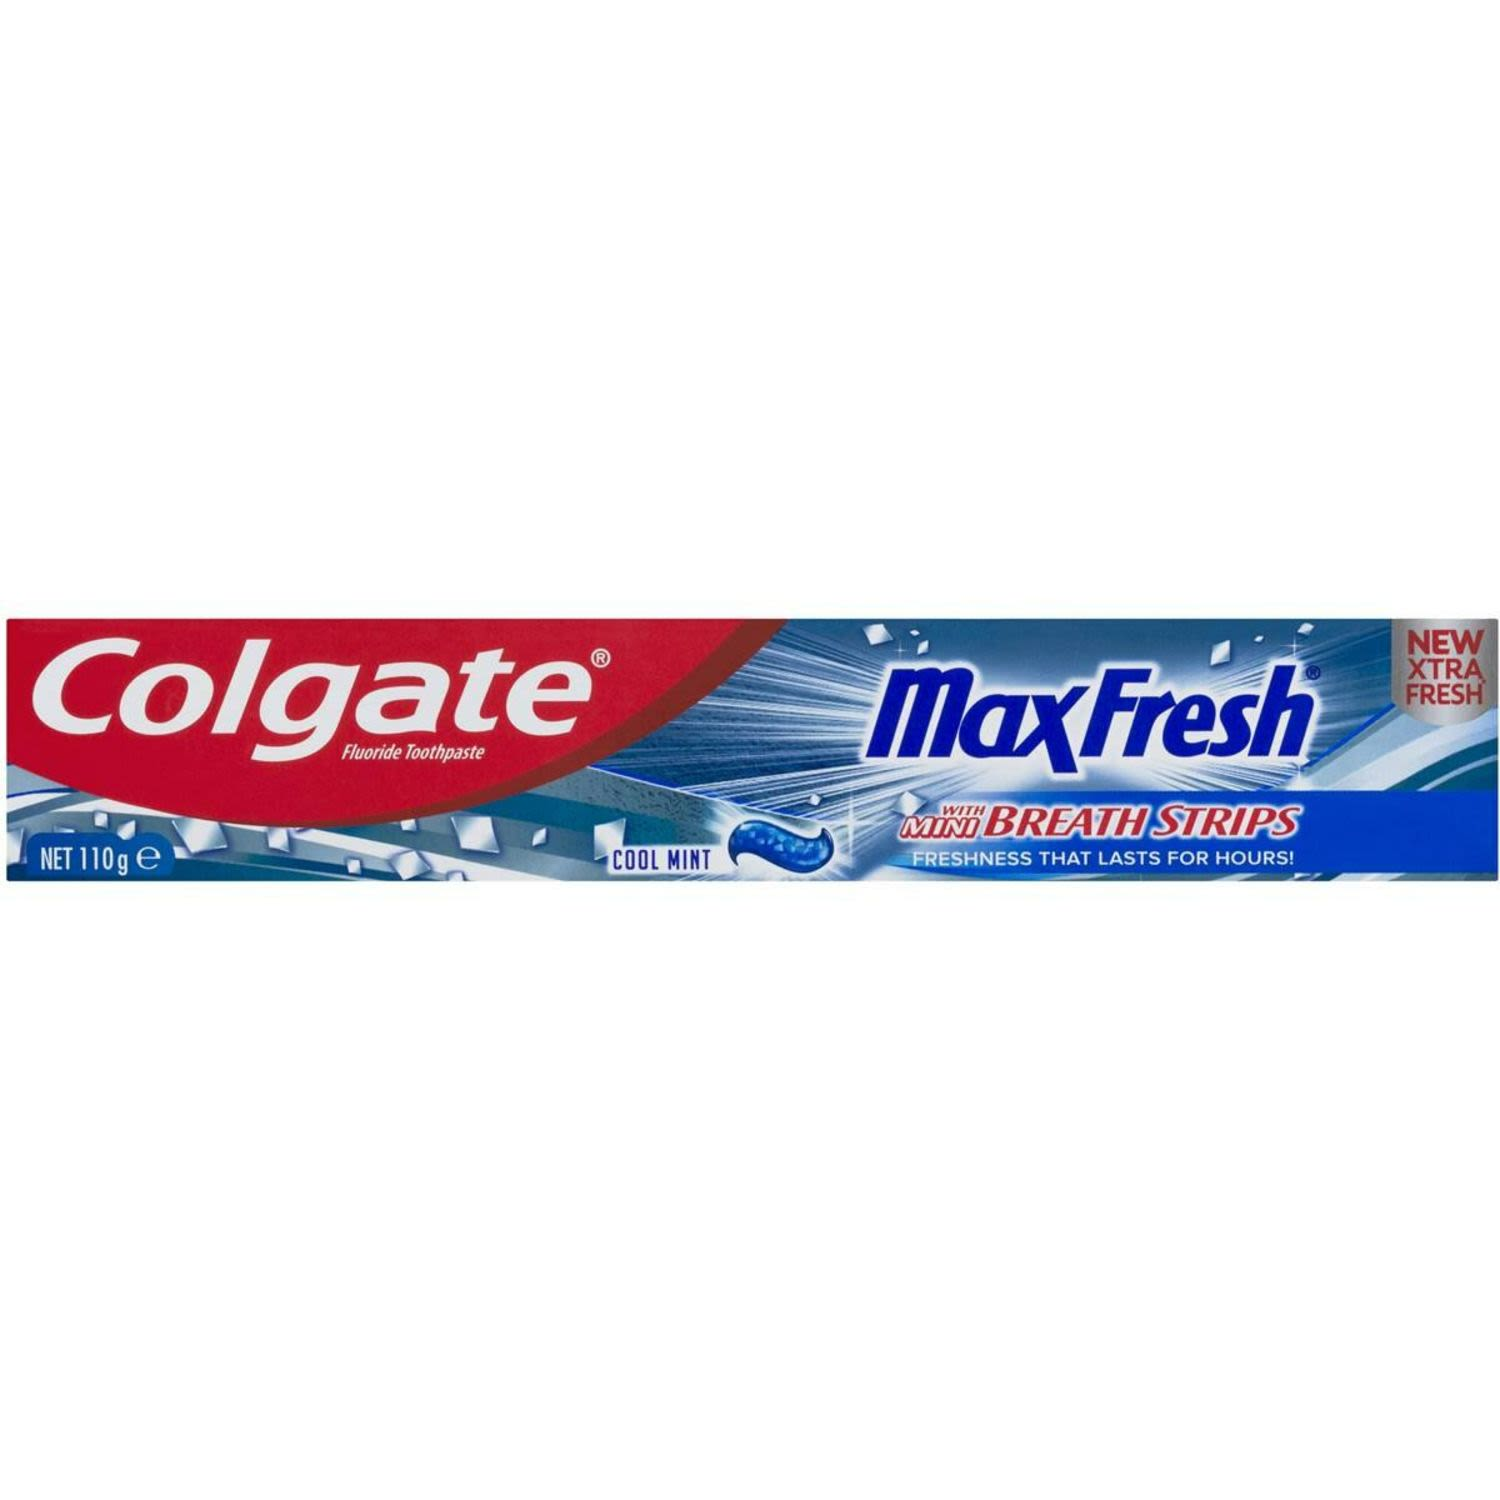 Colgate Max Fresh Breath Toothpaste with Mini Breath Strips Cool Mint, 110 Gram